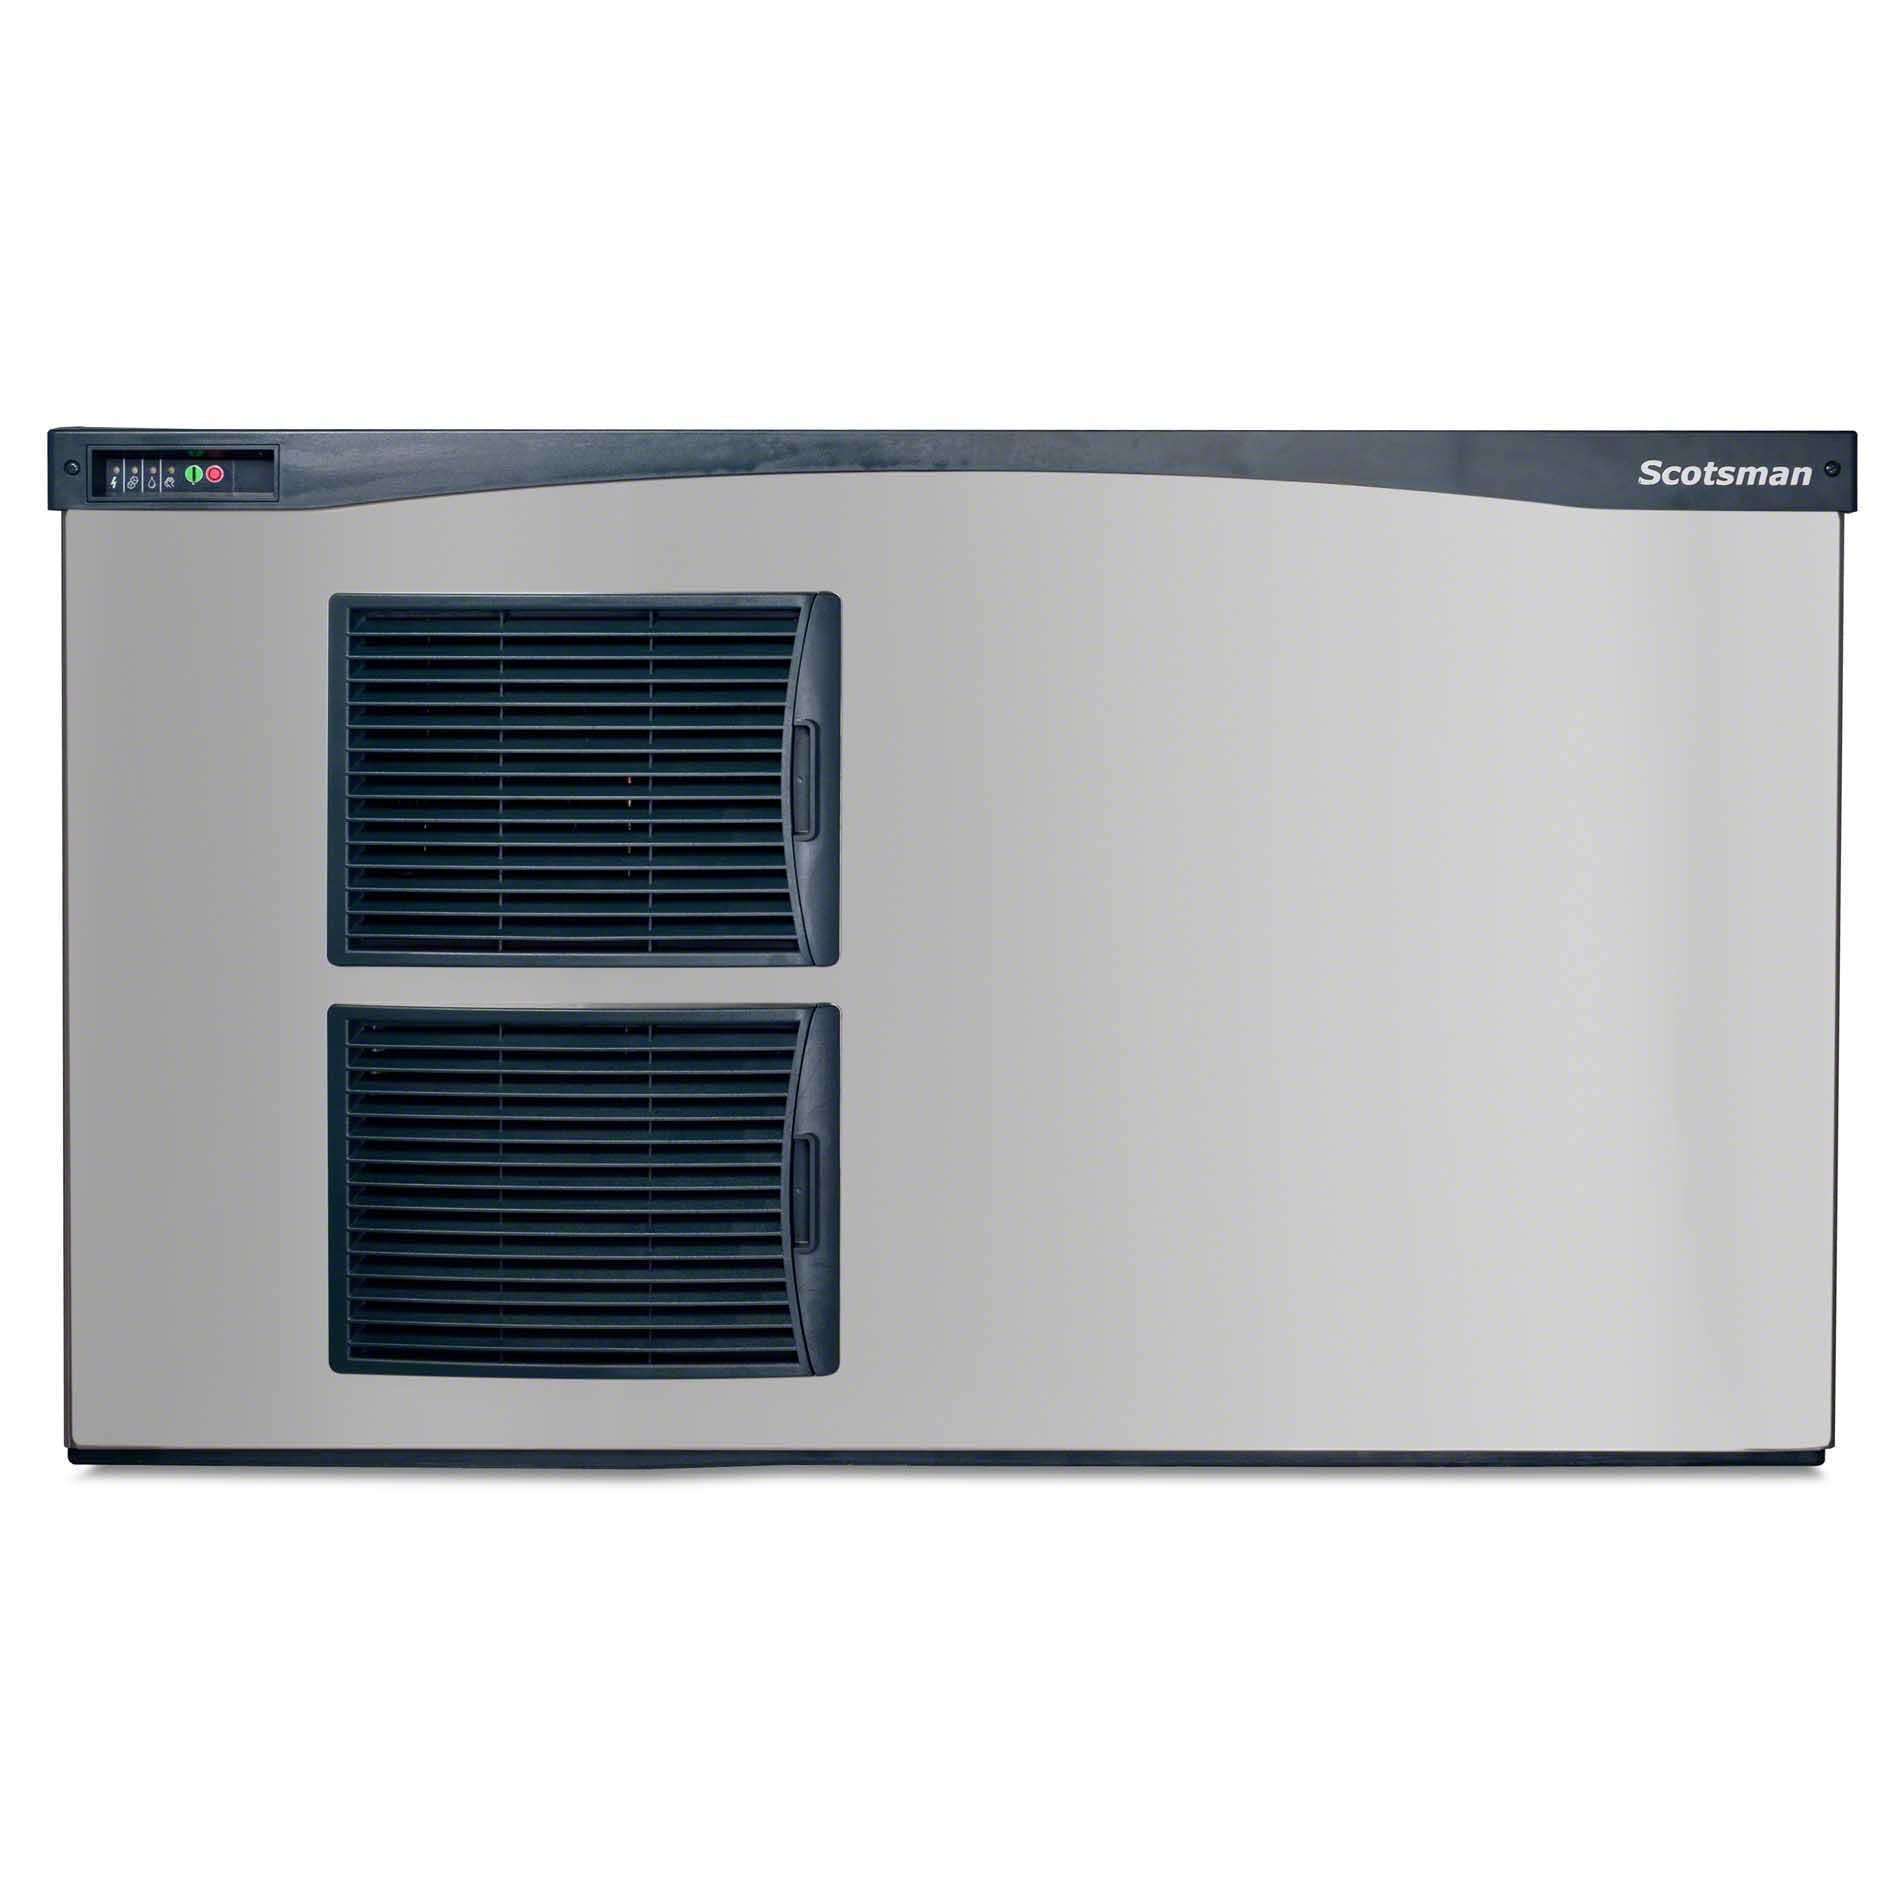 Scotsman - C1448SA-32A 1553 lb Half Size Cube Ice Machine - Prodigy Series Ice machine sold by Food Service Warehouse